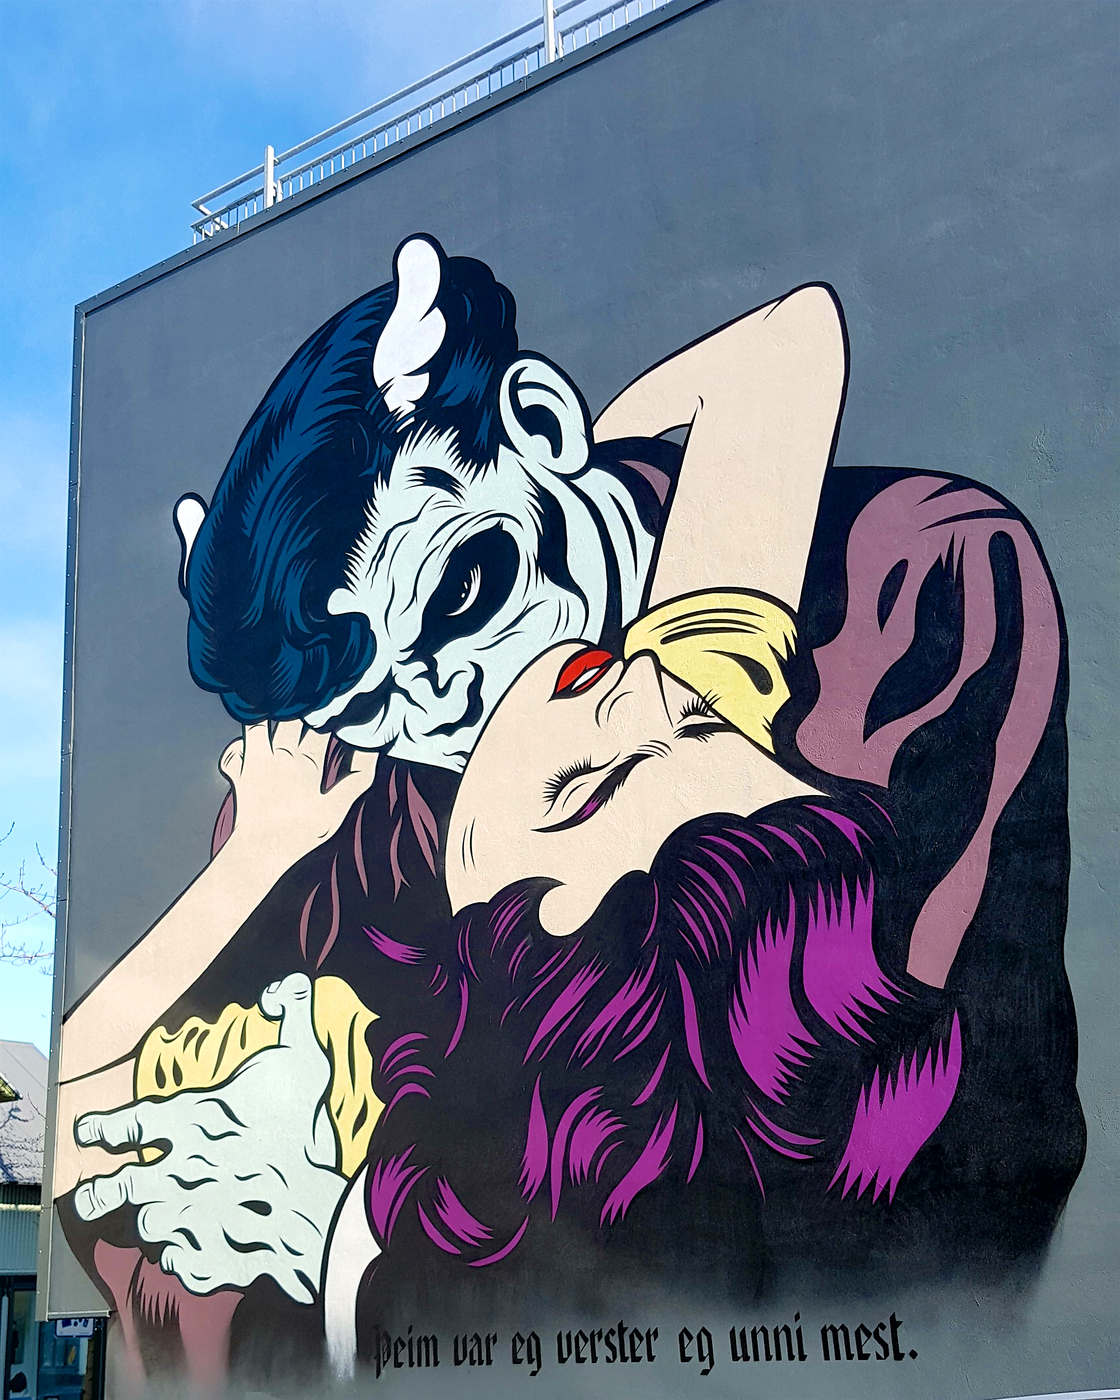 Street Art in Iceland - Walking through the streets of Reykjavik